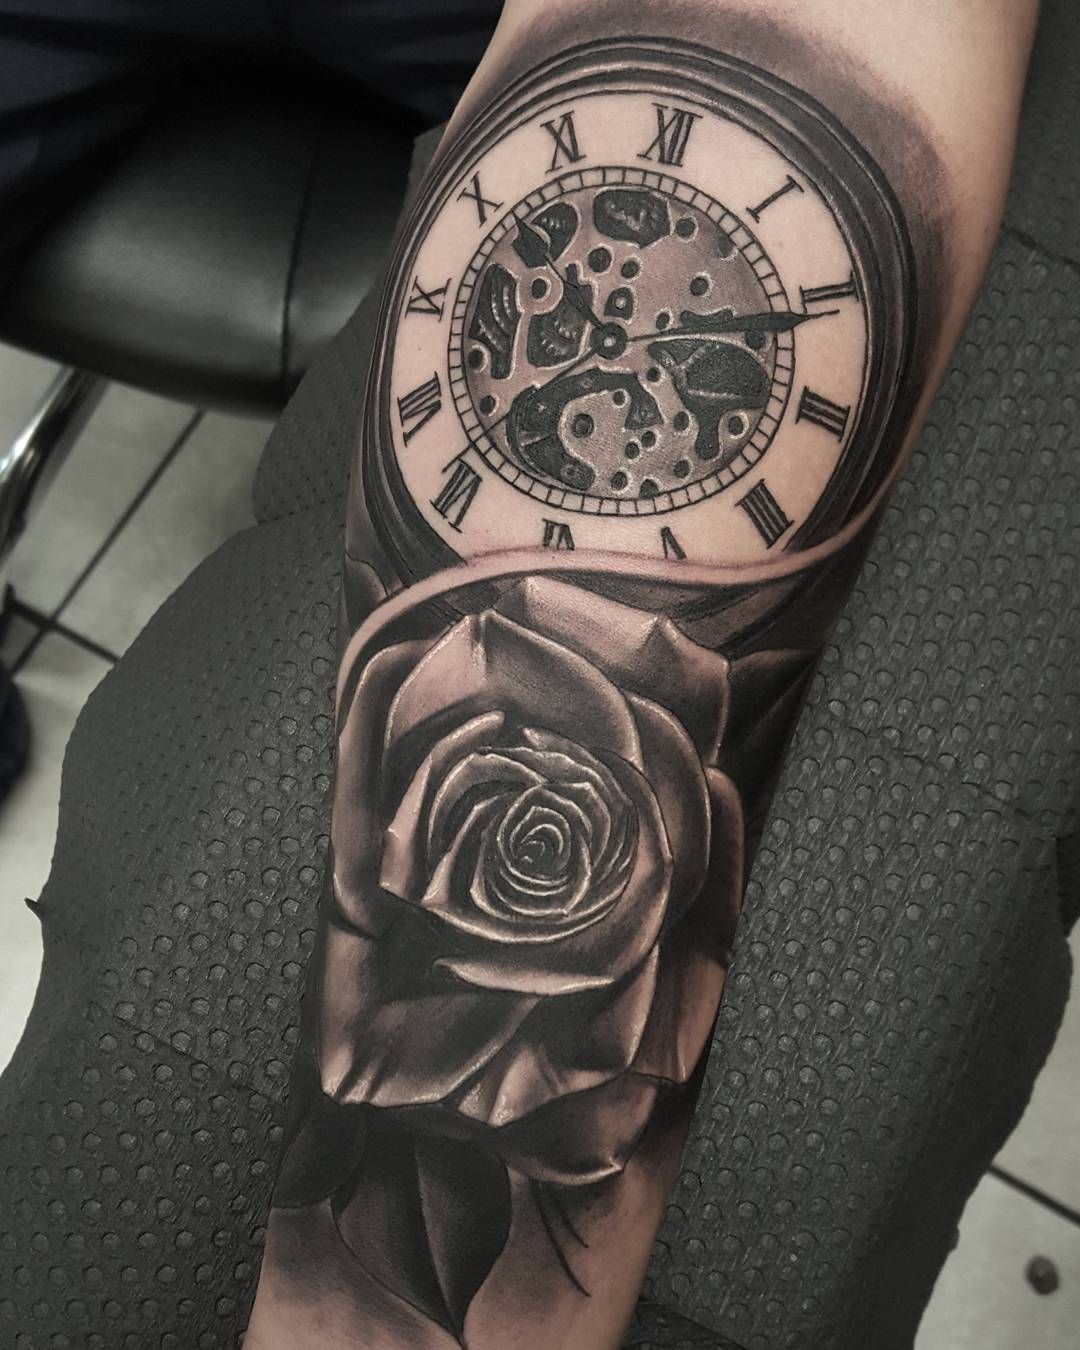 80 Timeless Pocket Watch Tattoo Ideas